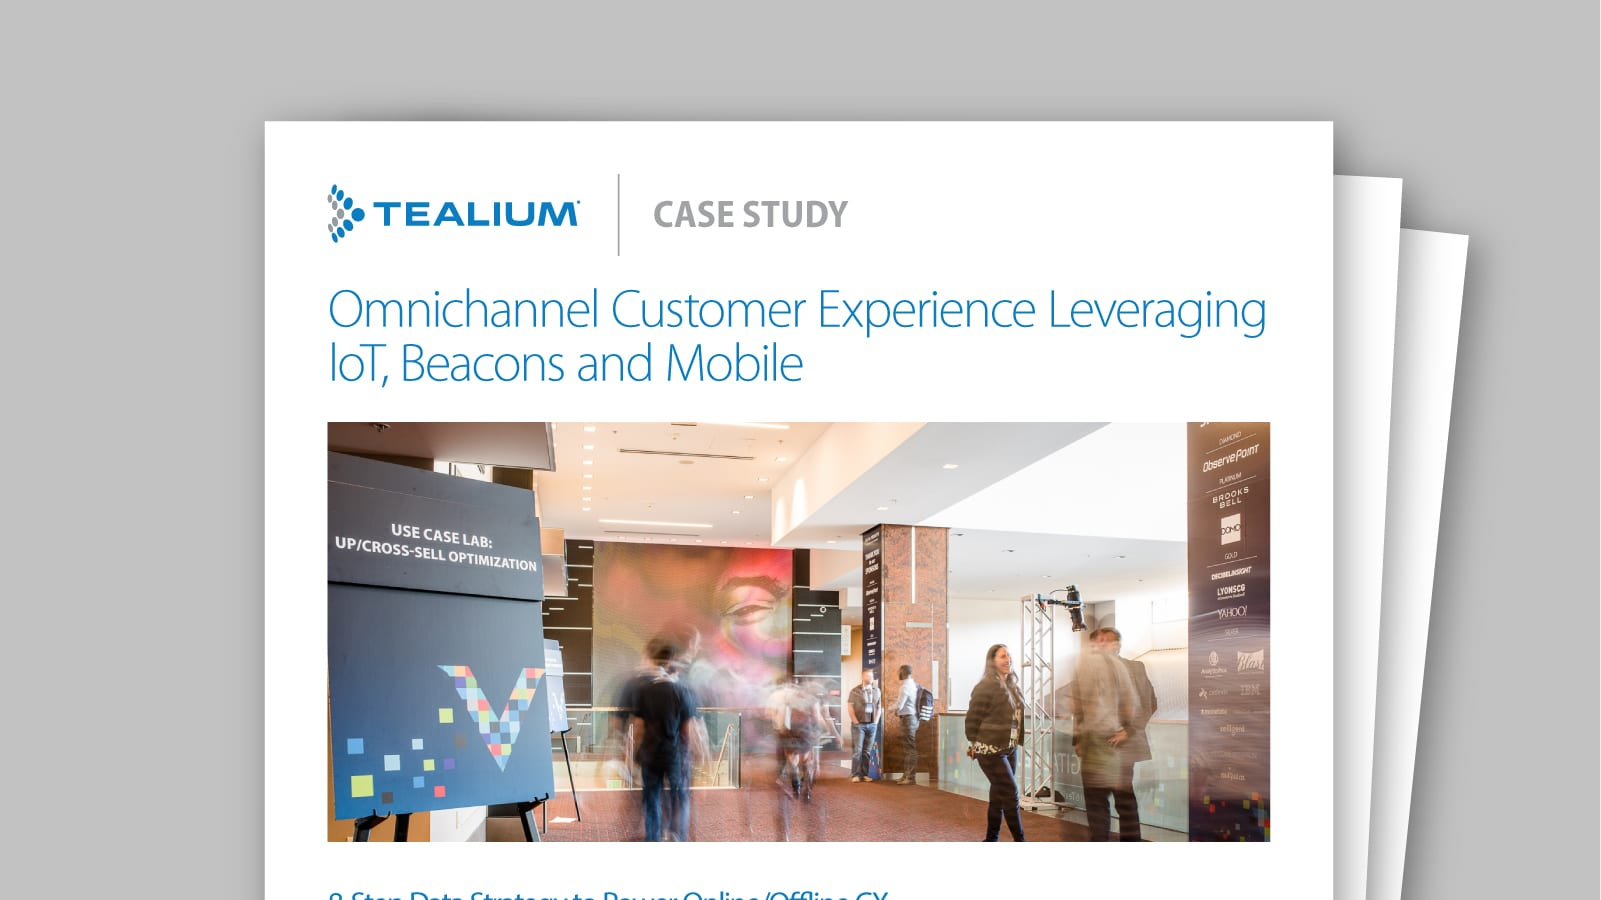 Omnichannel Customer Experience Leveraging loT, Beacons and